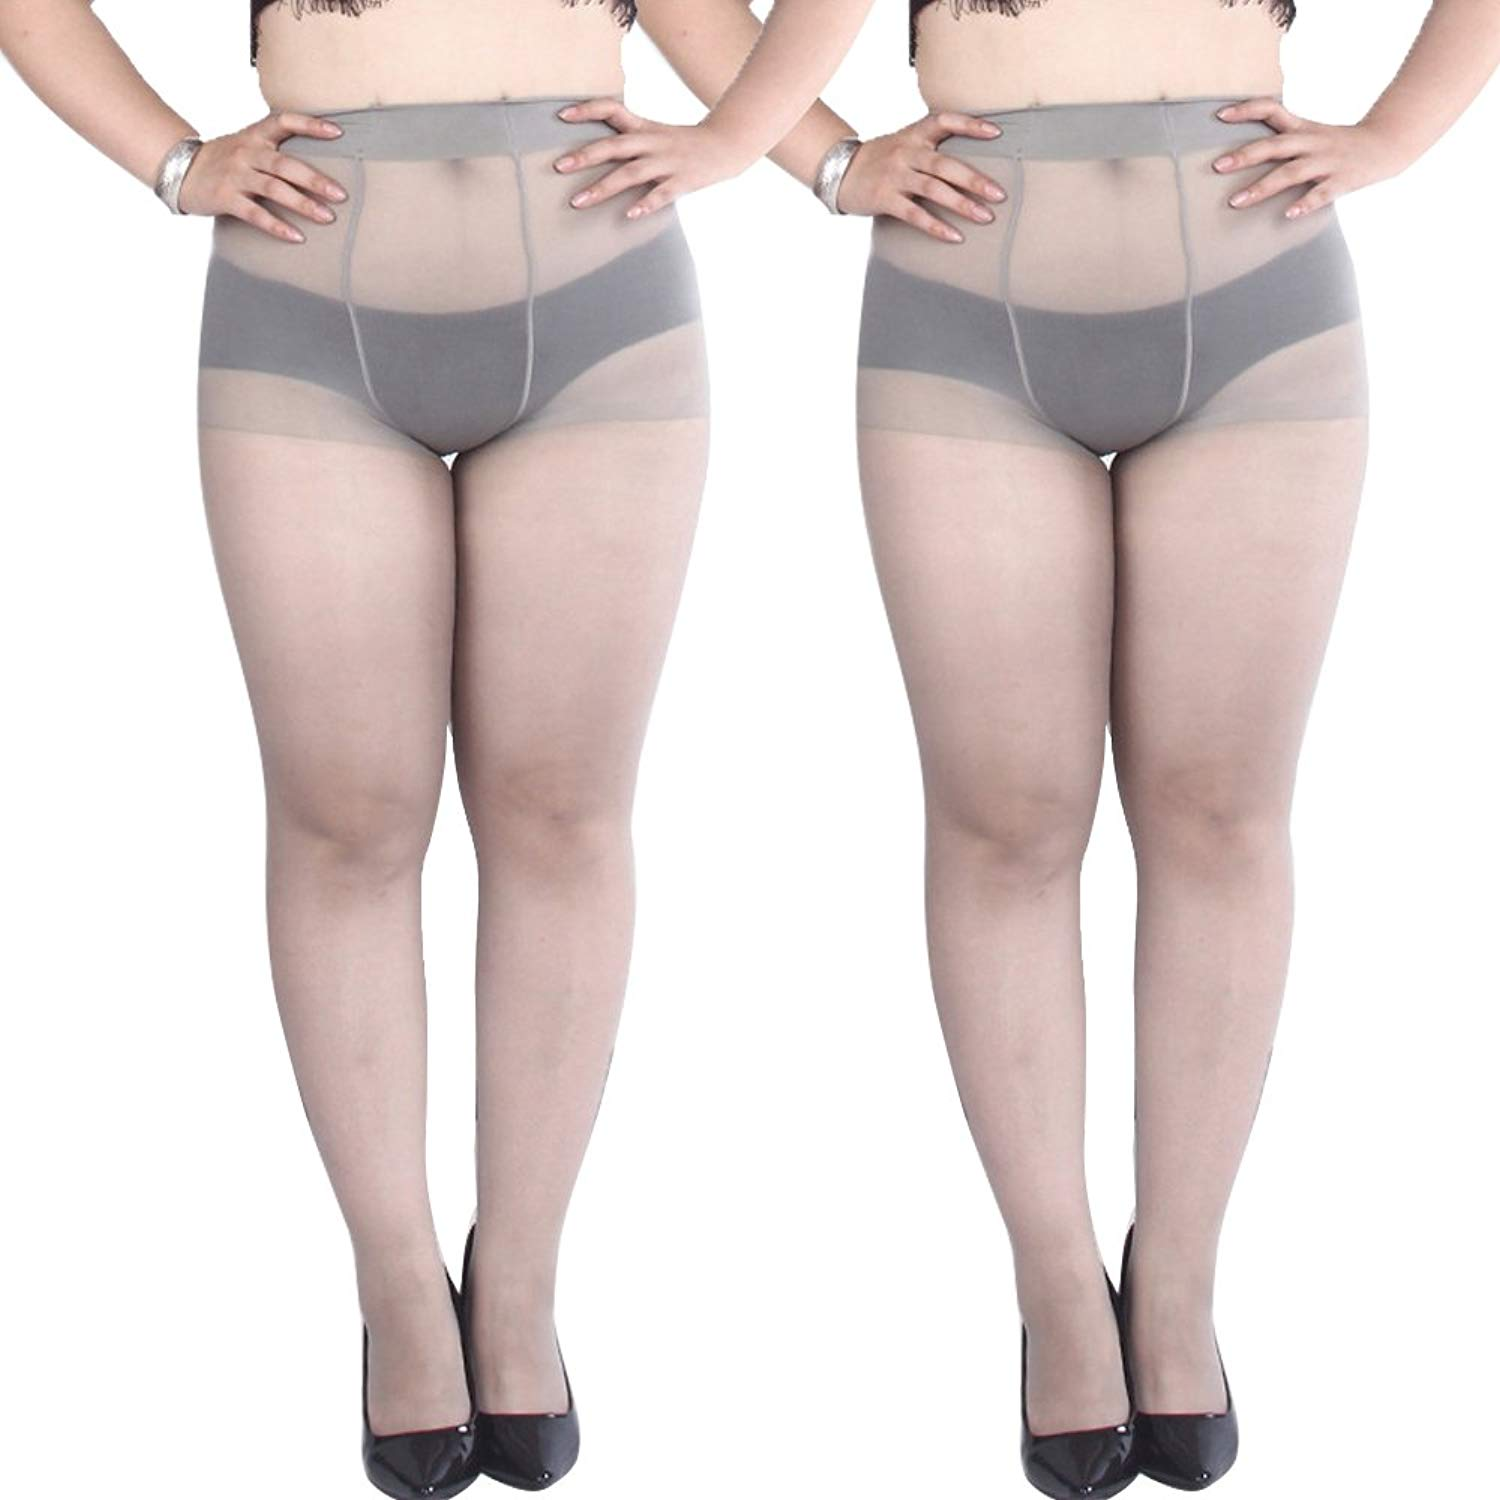 cb95a9711a Get Quotations · Plus Size Pantyhose 2-Packs Support Hose Control Top Sheer  Stockings